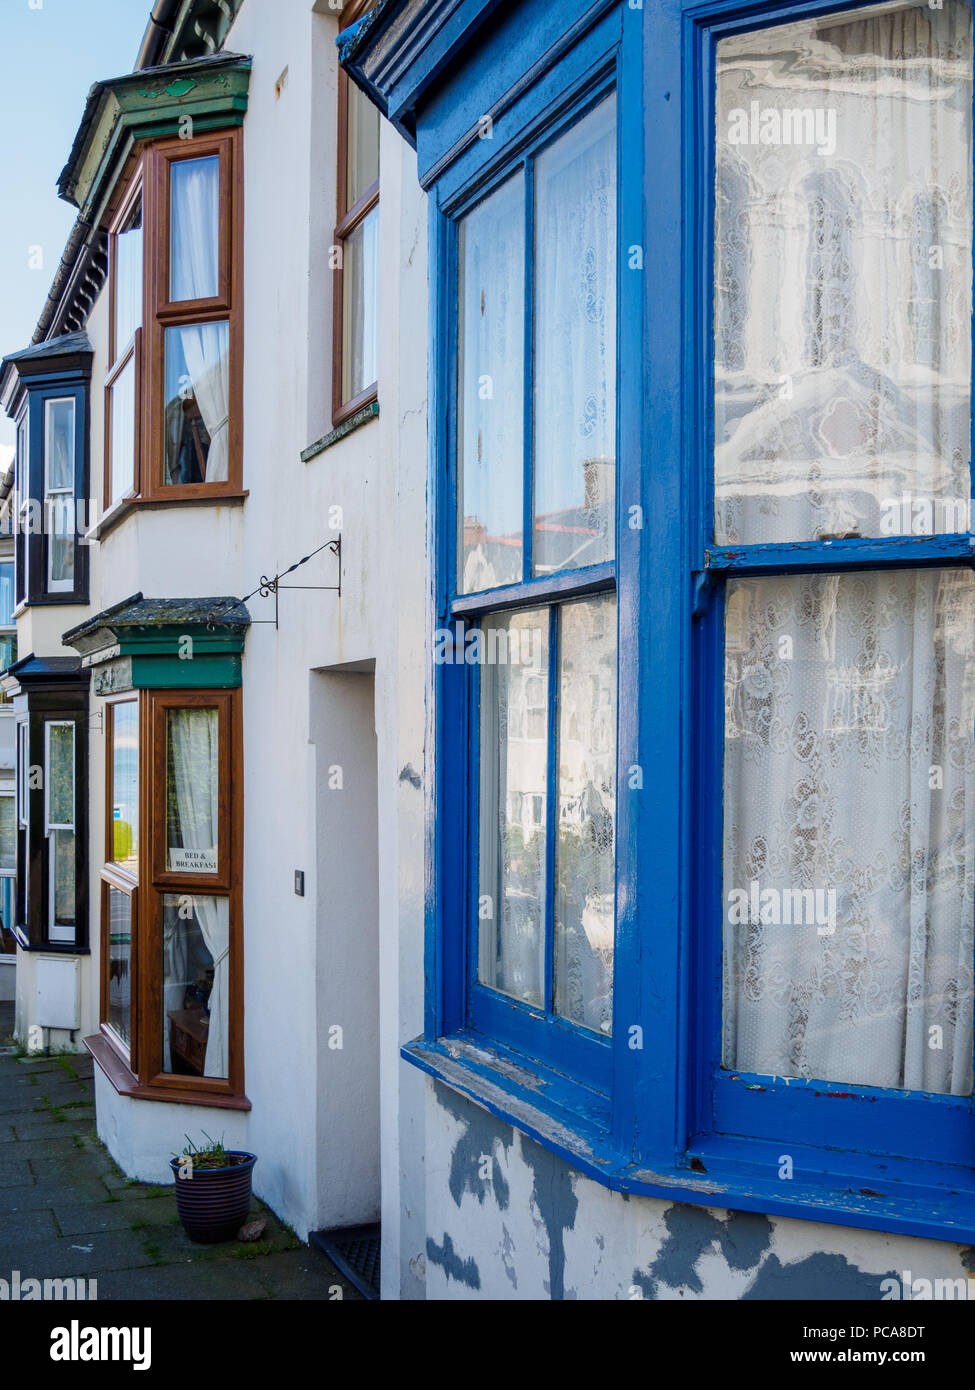 Colorful bay windows of a cottage in the small resort village of Criccieth on the Llyn peninsula, Gwynedd in Wales, UK. - Stock Image